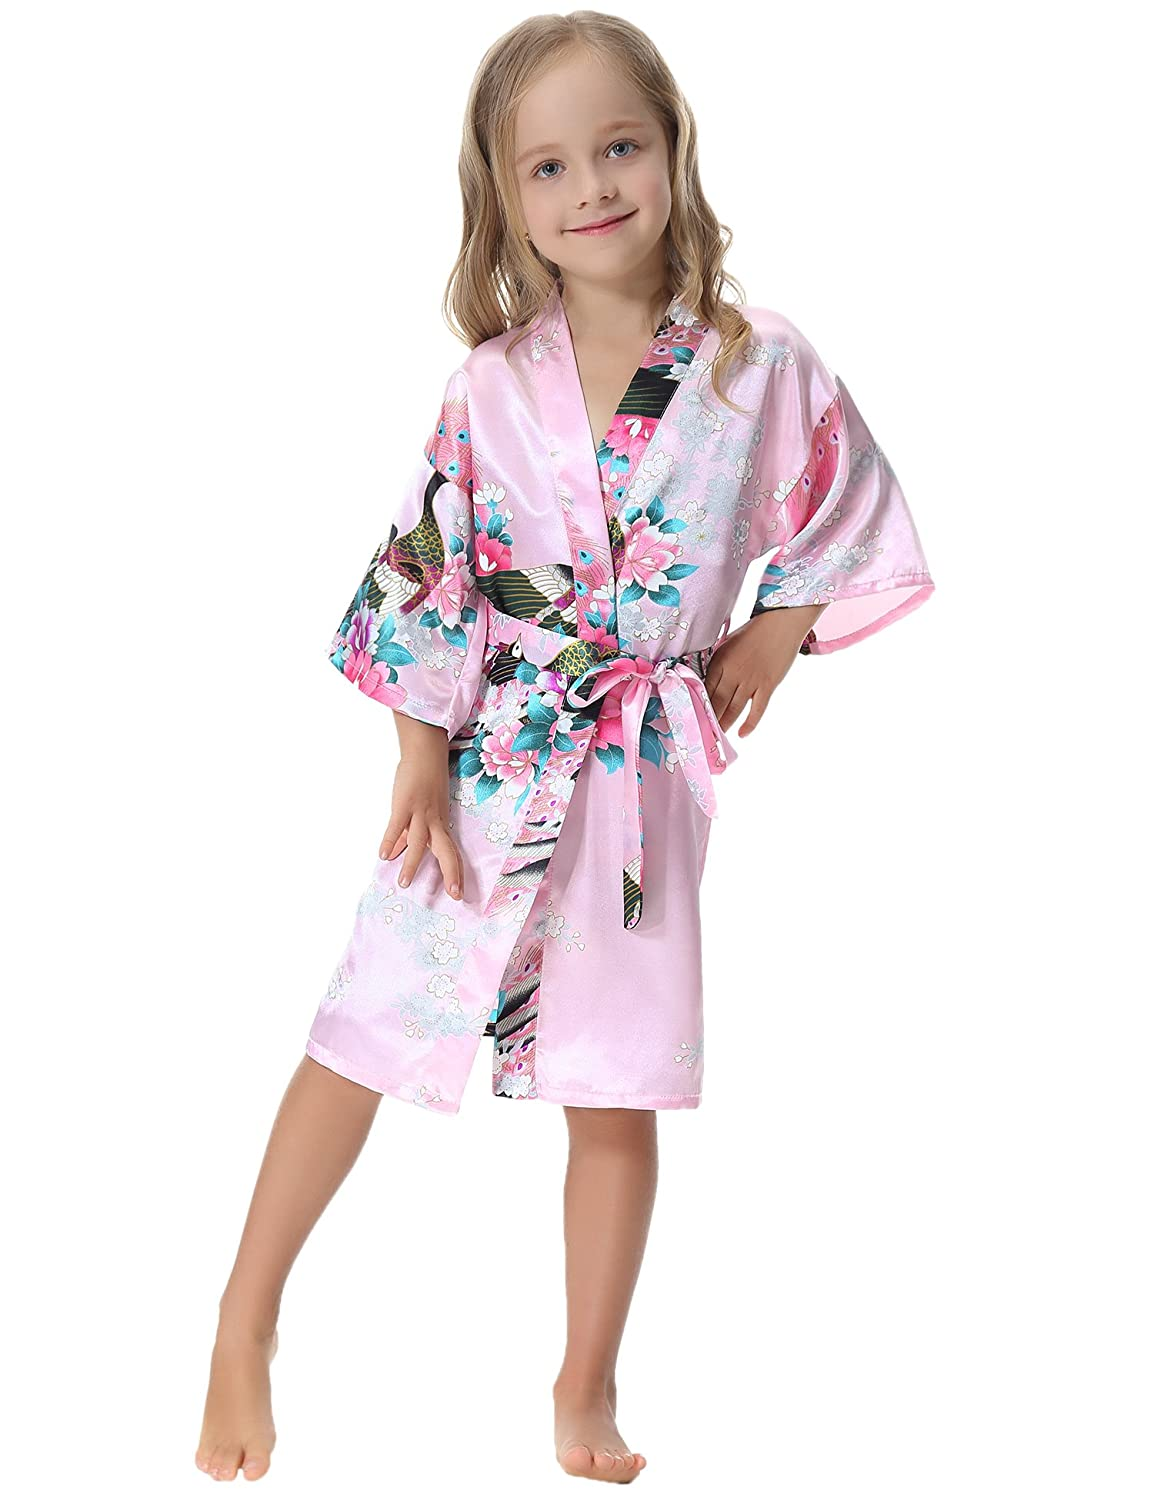 Aibrou Girls  Satin Kimono Robe Peacock Bathrobe Nightgown for Spa Party  Wedding Birthday  Amazon.co.uk  Clothing b54f29618